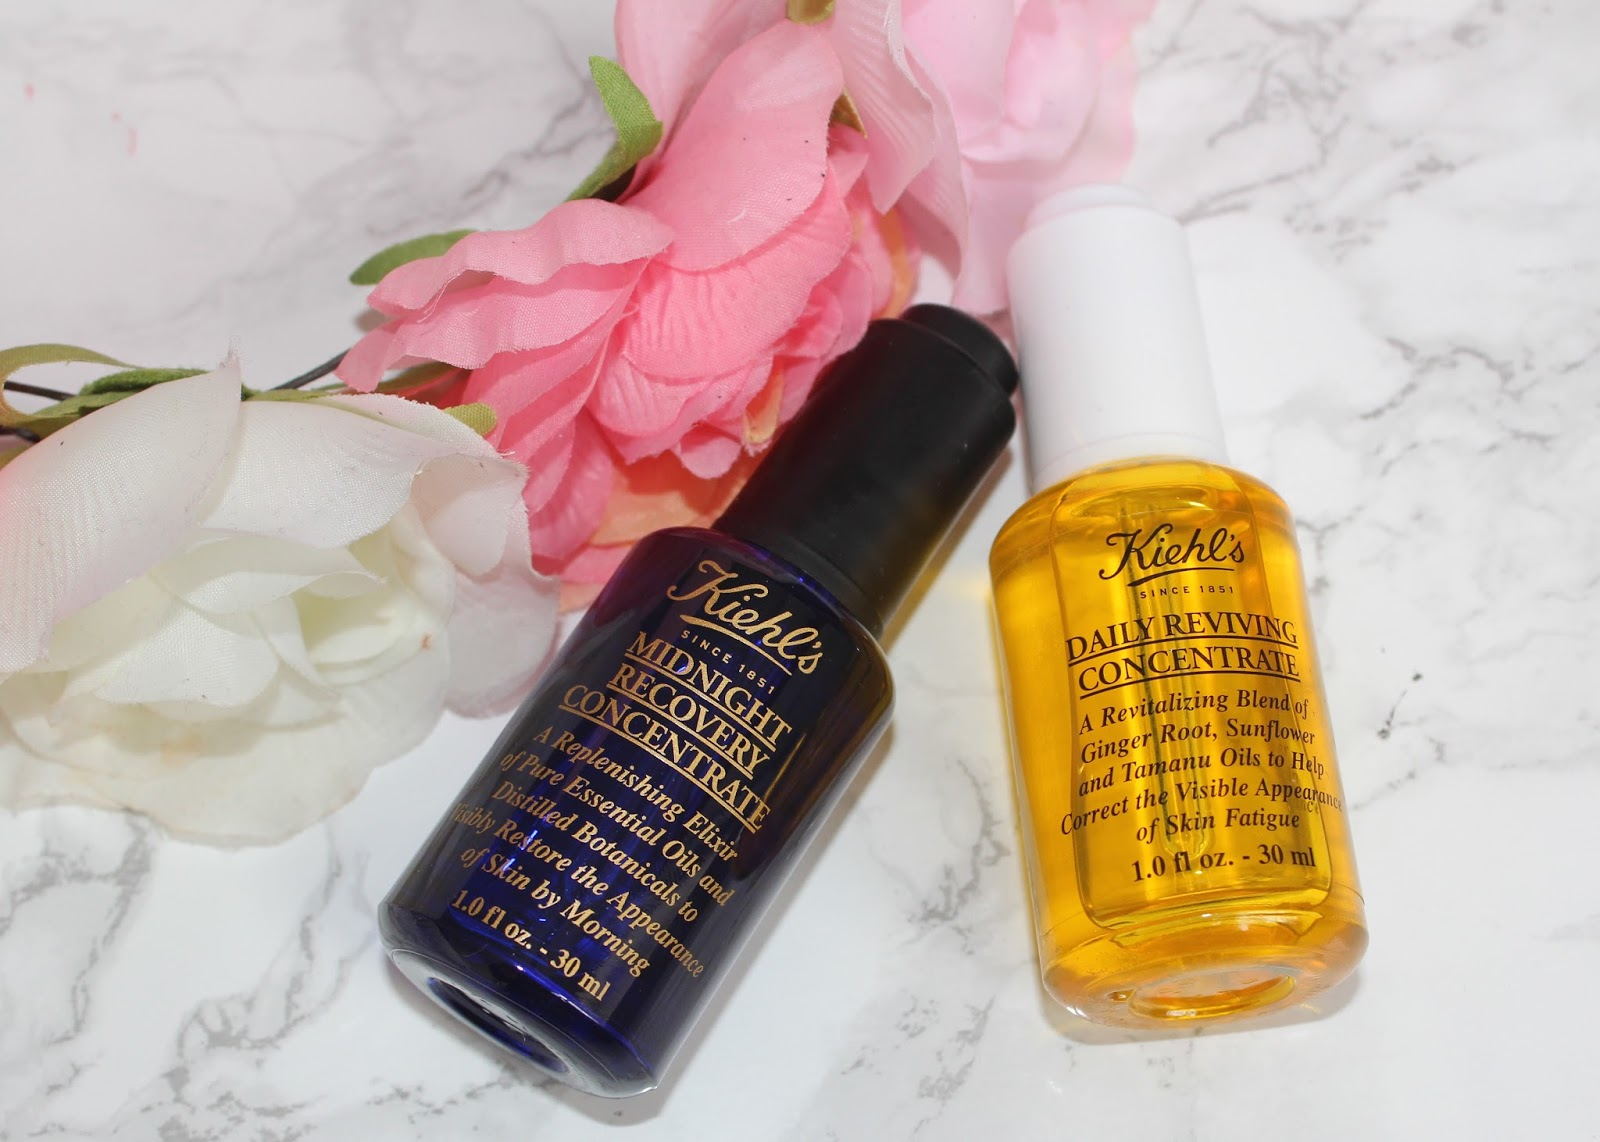 New from Kiehl's - Daily Reviving Concentrate review